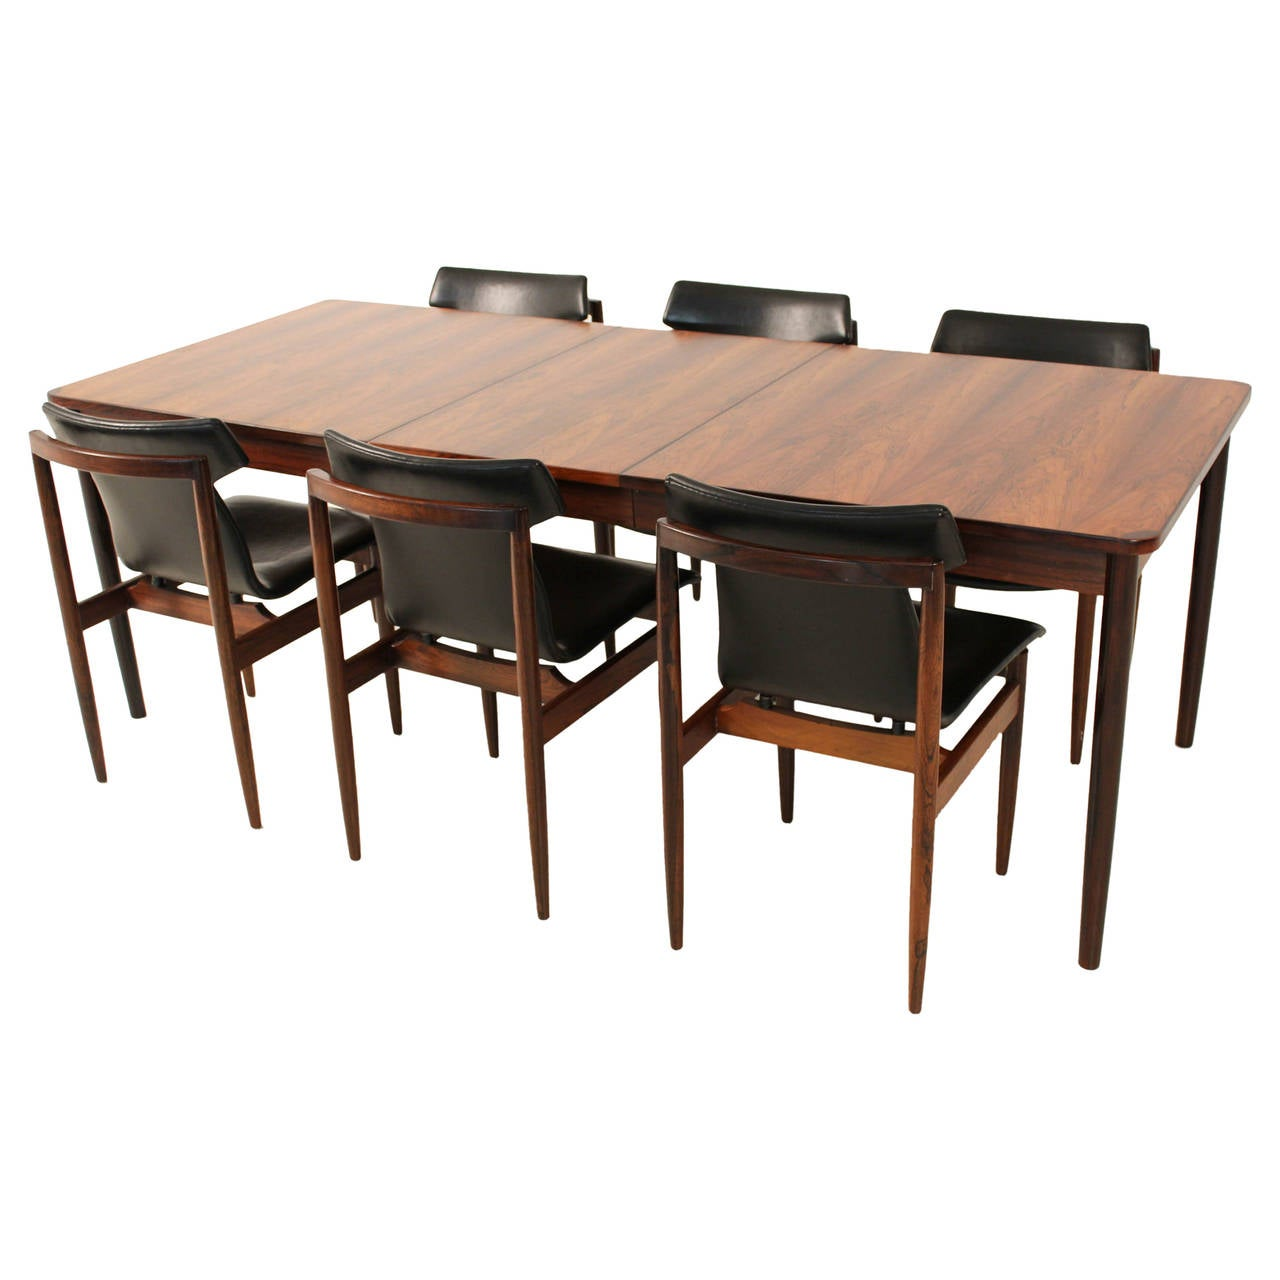 Mid Century Modern Dining: Mid-Century Modern Dining Table By Fristho At 1stdibs